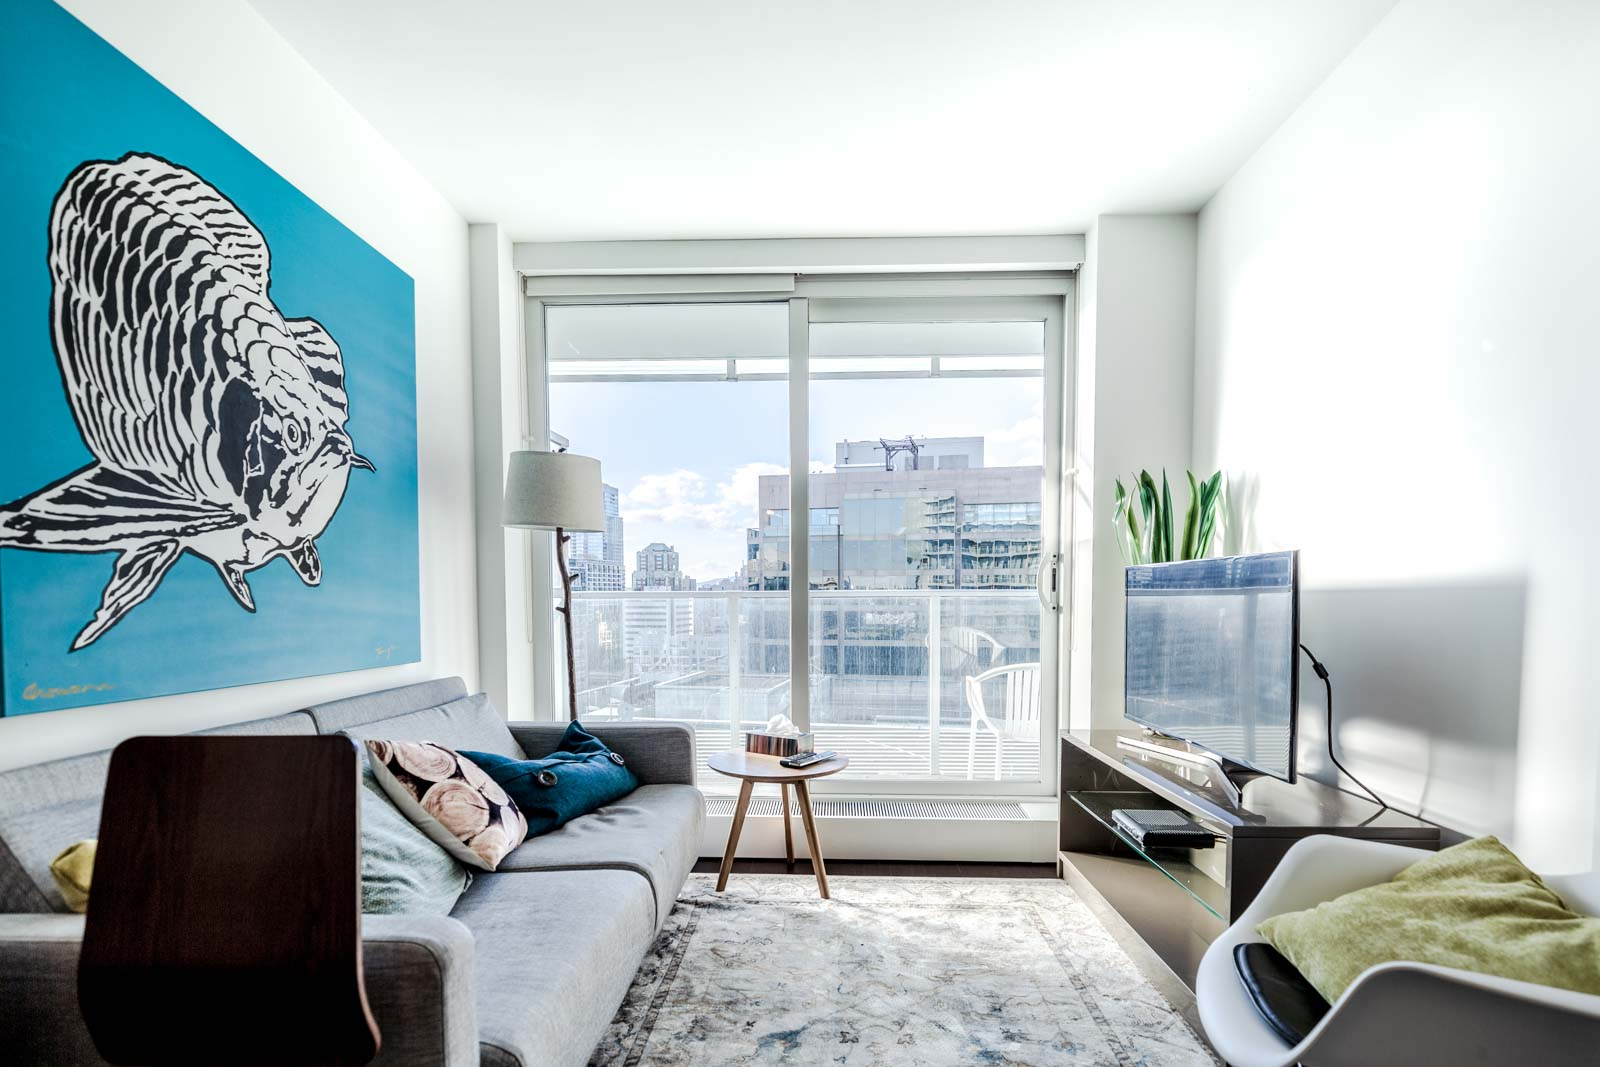 Furnished living room with view at Downtown Vancouver condo rental.